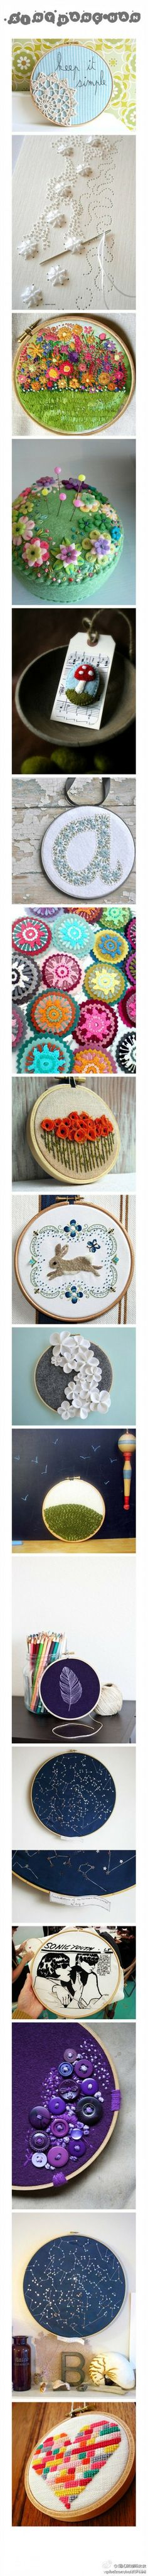 Small embroideries.